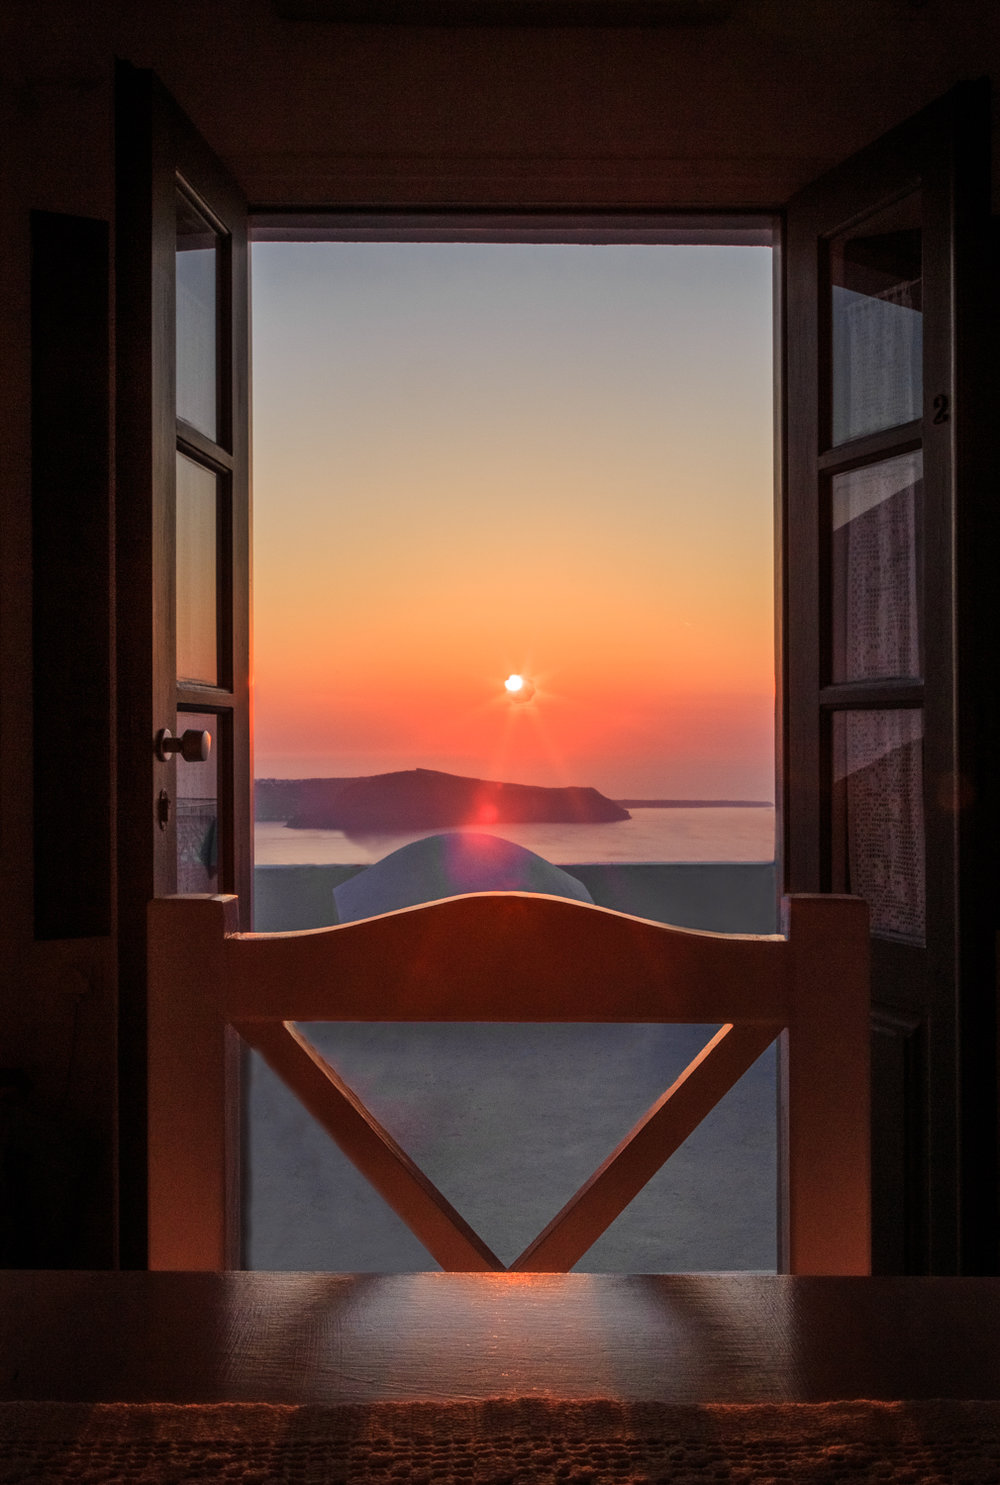 Santorini sunset by Rick McEvoy ABIPP - Travel Photographer